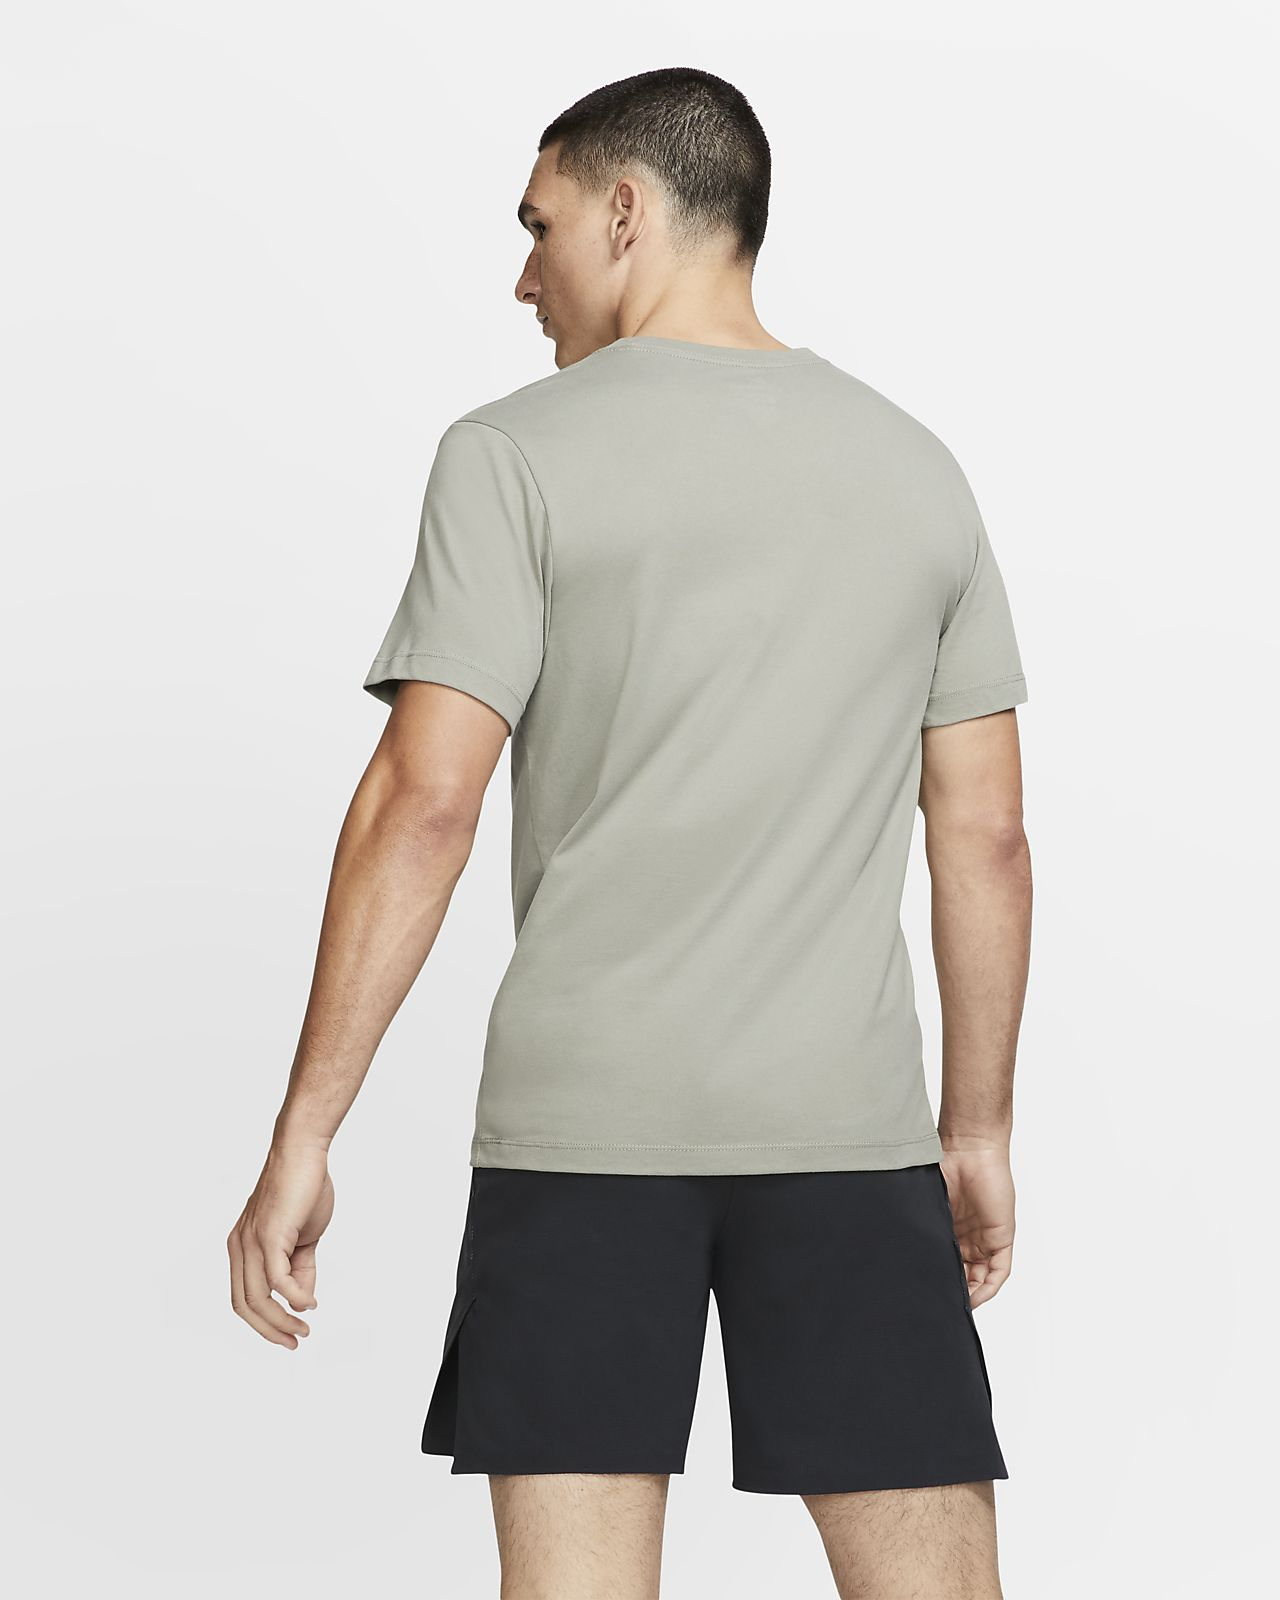 6ce763ec Nike Dri-FIT Men's Training T-Shirt. Nike.com EG